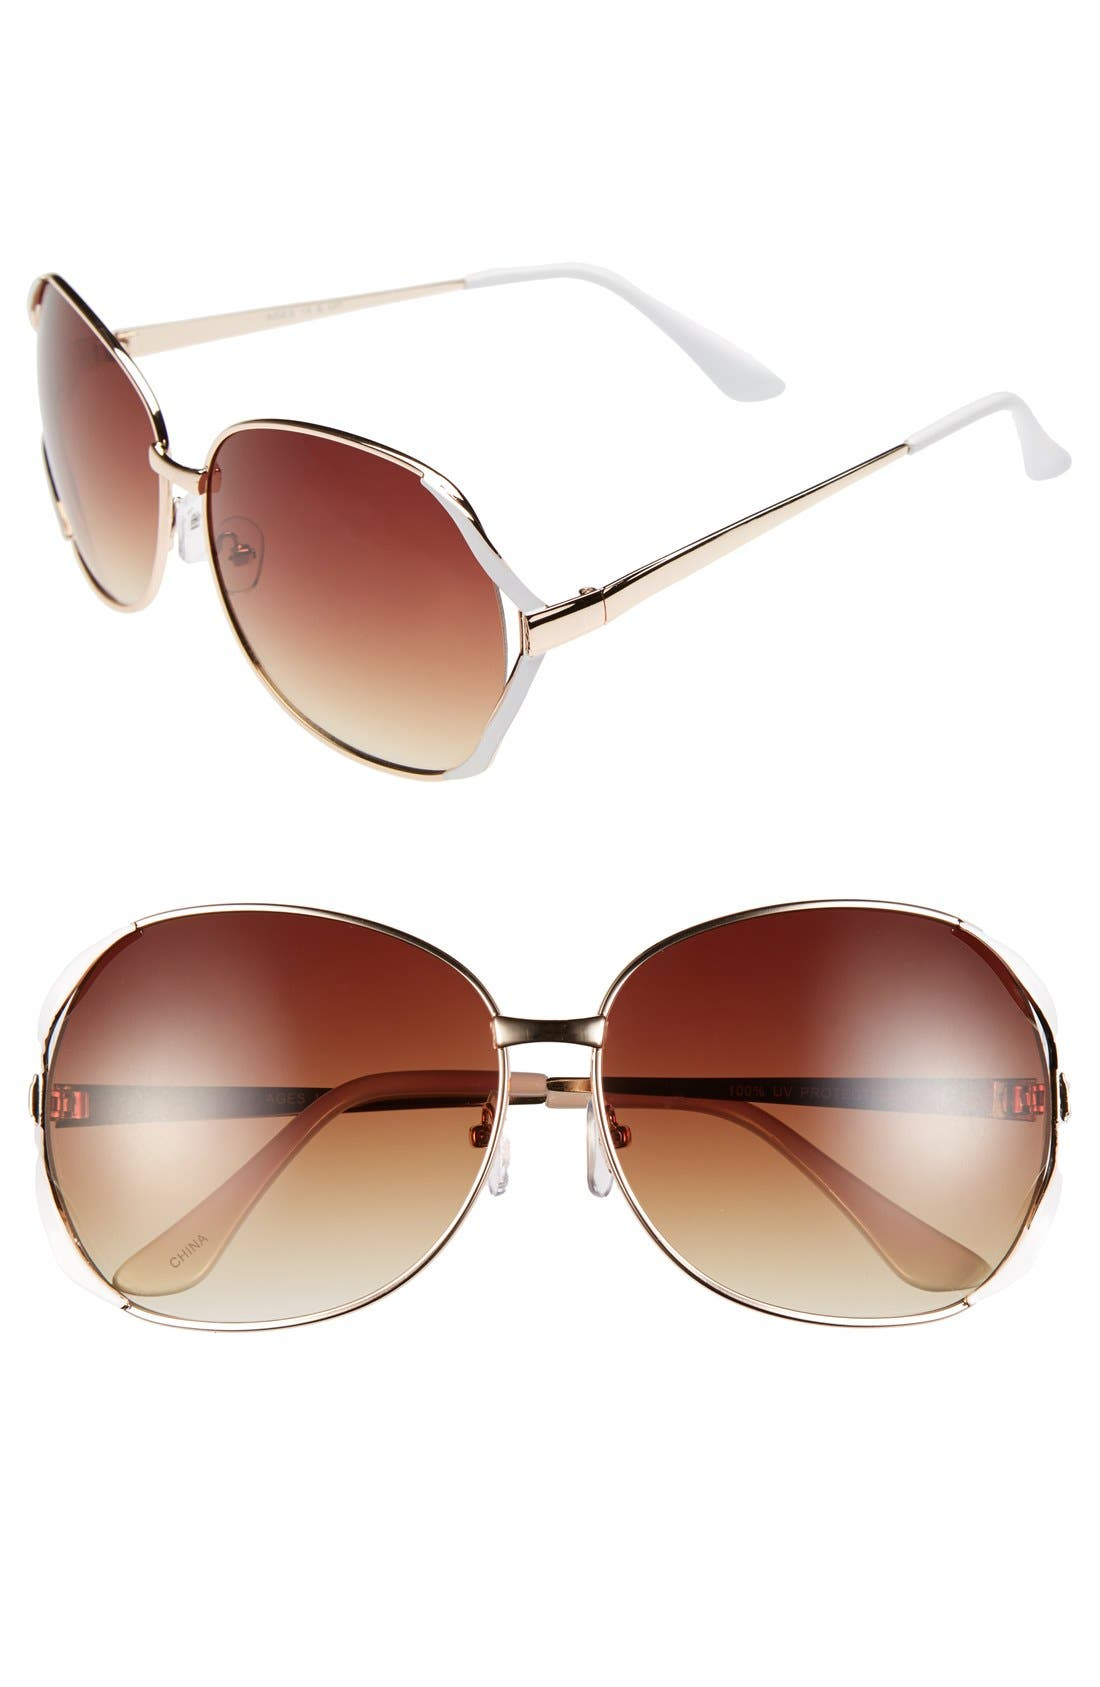 Main Image - Fantas Eyes 'San Juan' Aviator Sunglasses (Juniors)